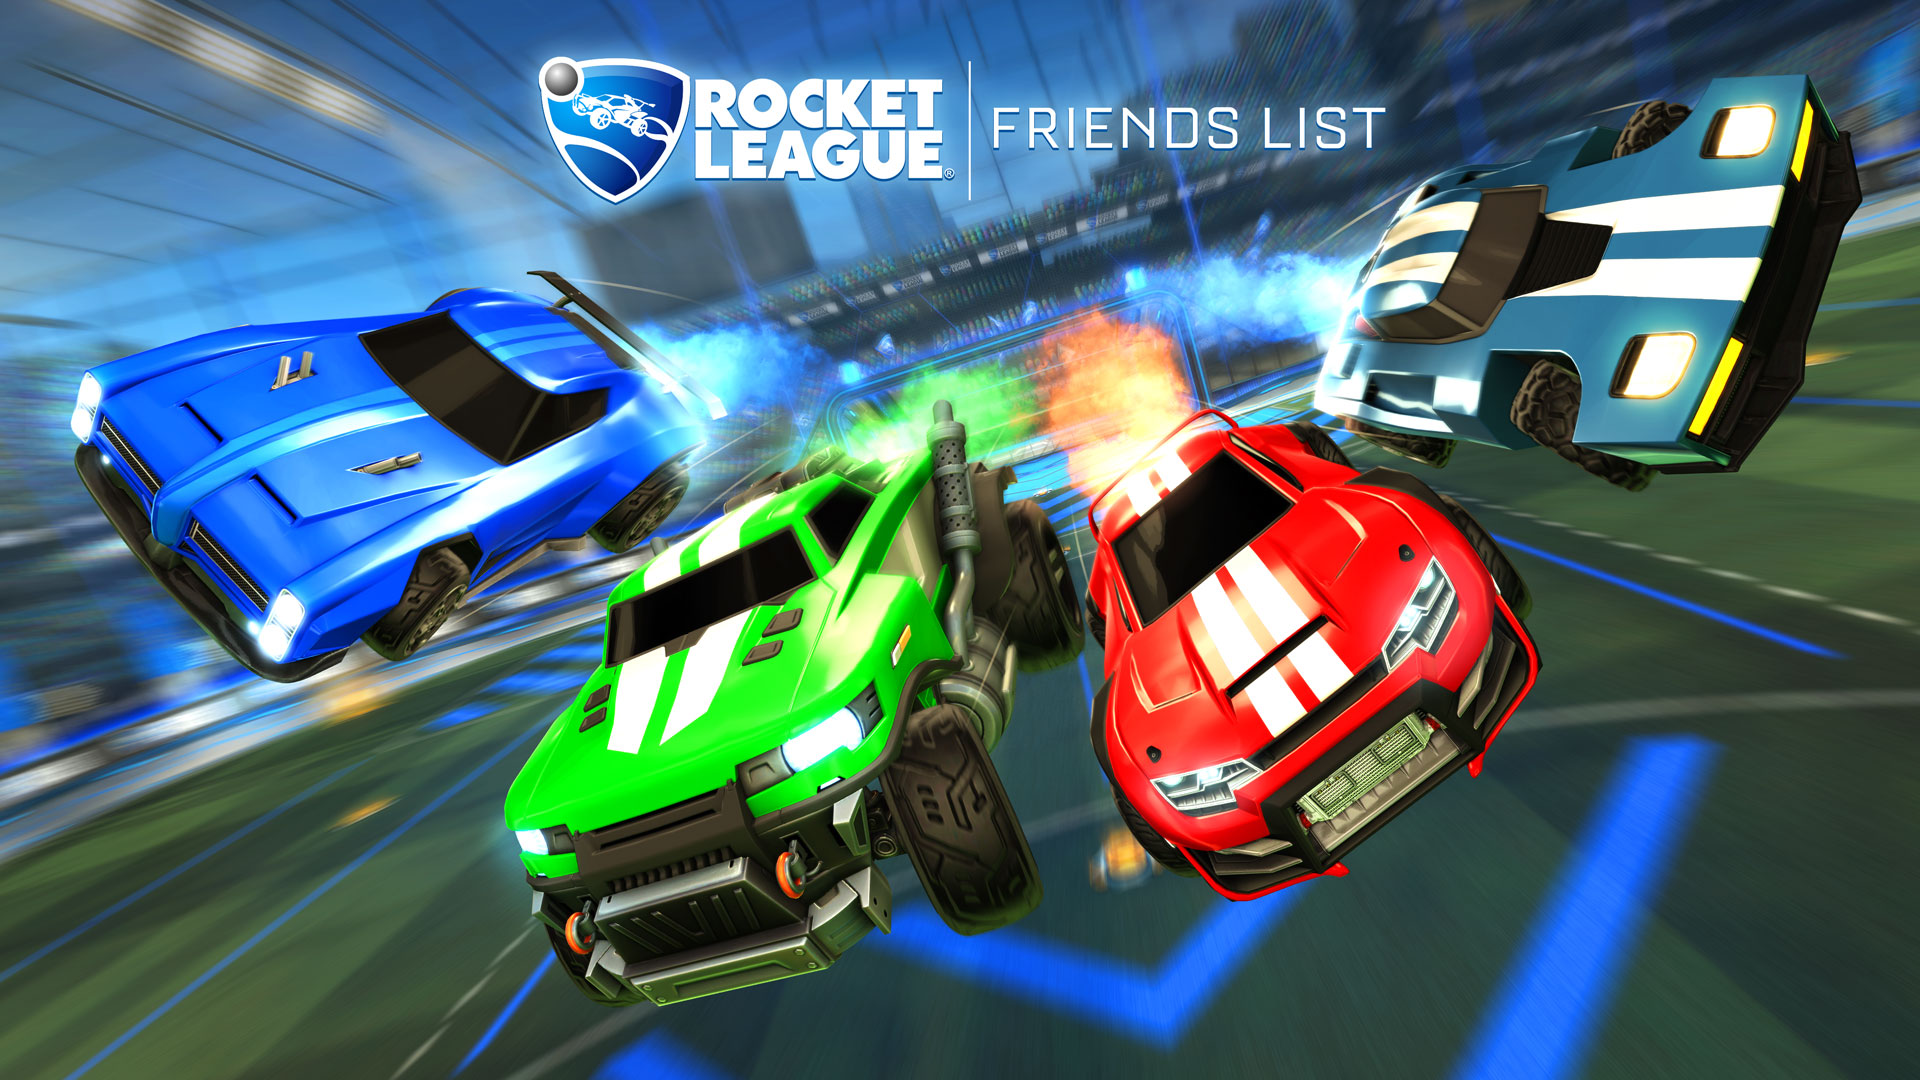 Rocket League Friends Update lets you invite players Cross-Platform